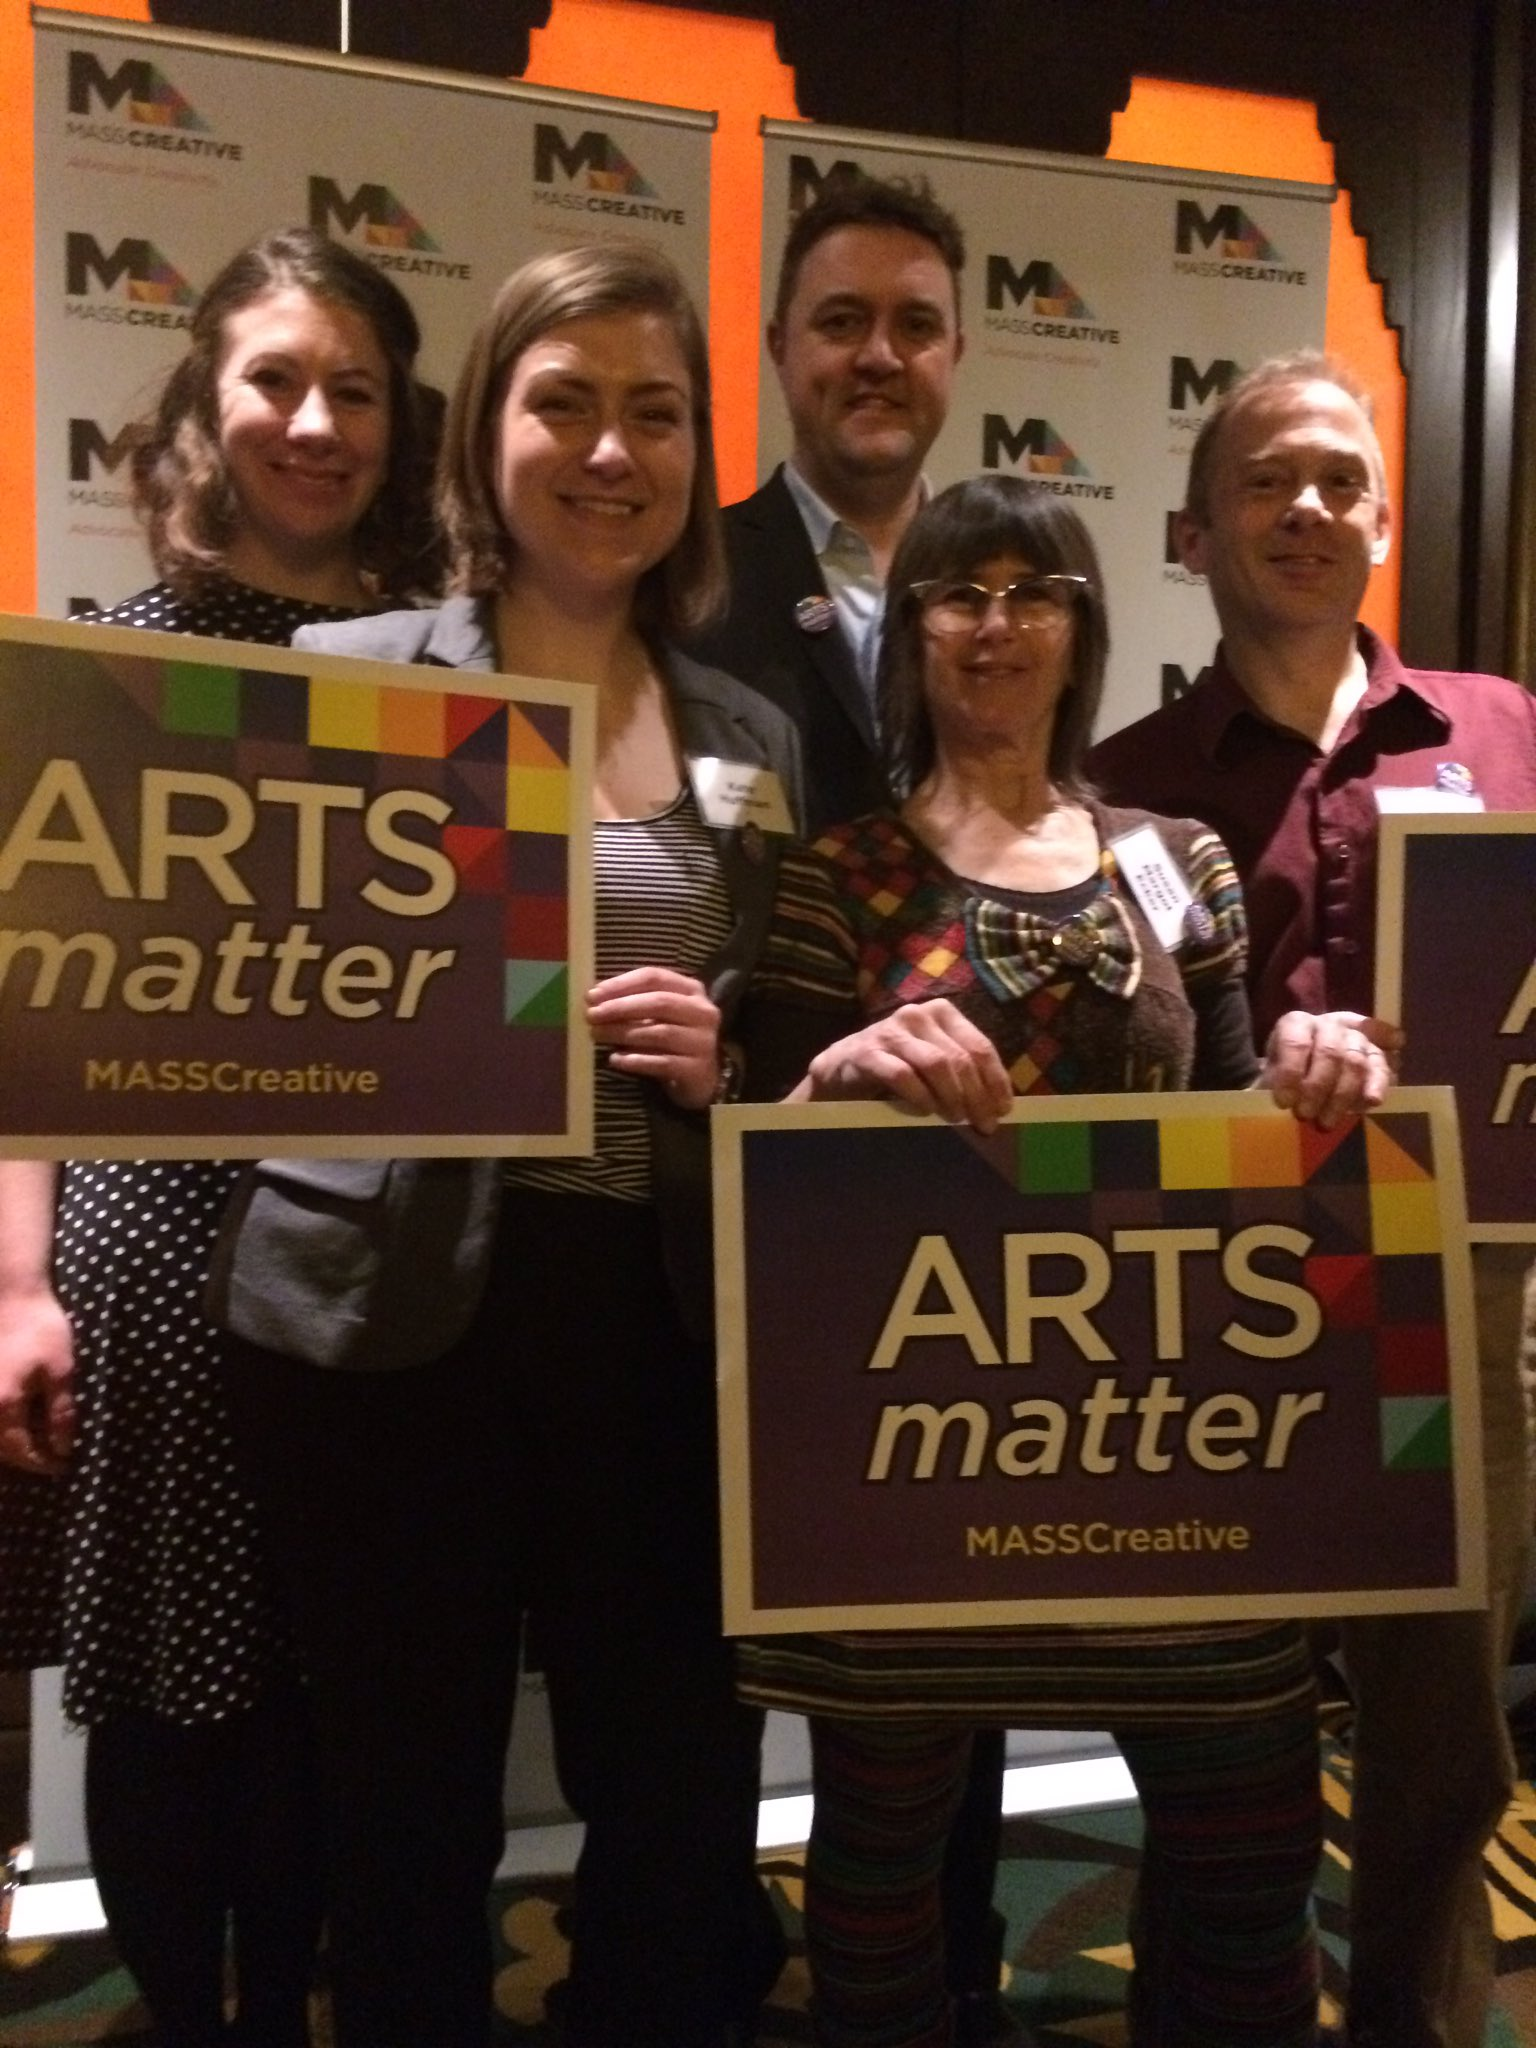 #EncoreTours staff at #AMAD17 Excited to advocate for the arts! @MASSCreative #artsmatter #musicmoves #musiced https://t.co/4jKW7zSs6p